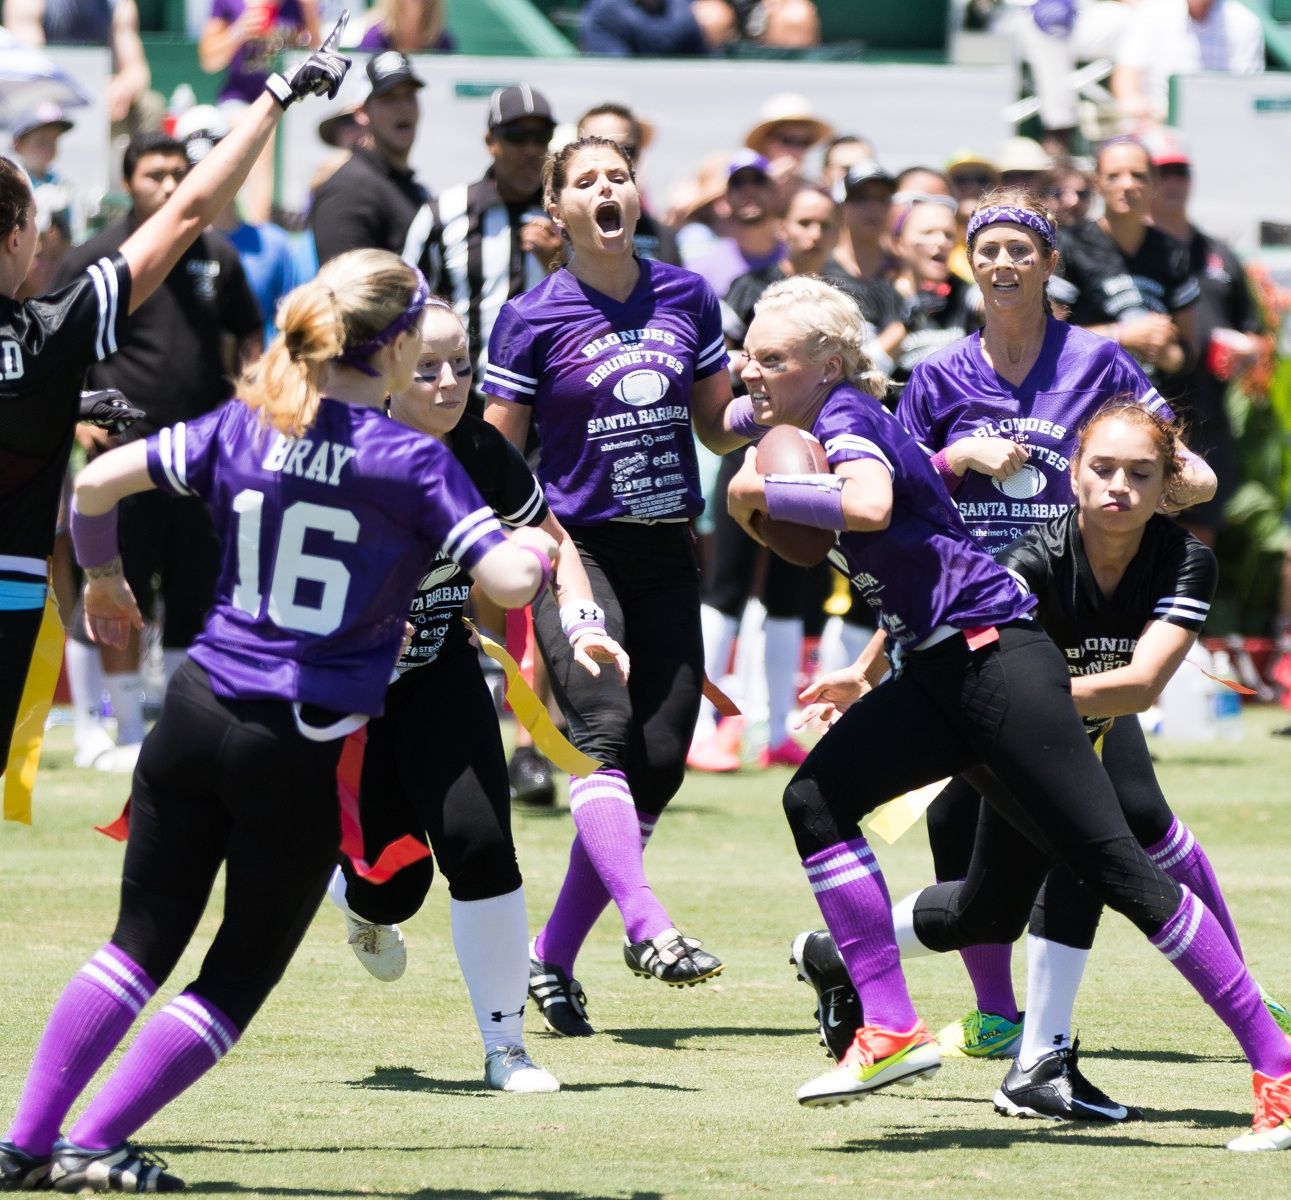 Christianne Taylor of Team Blonde looks for running room during Saturday's Blondes vs. Brunettes women's flag football game at the Santa Barbara Polo & Racquet Club.